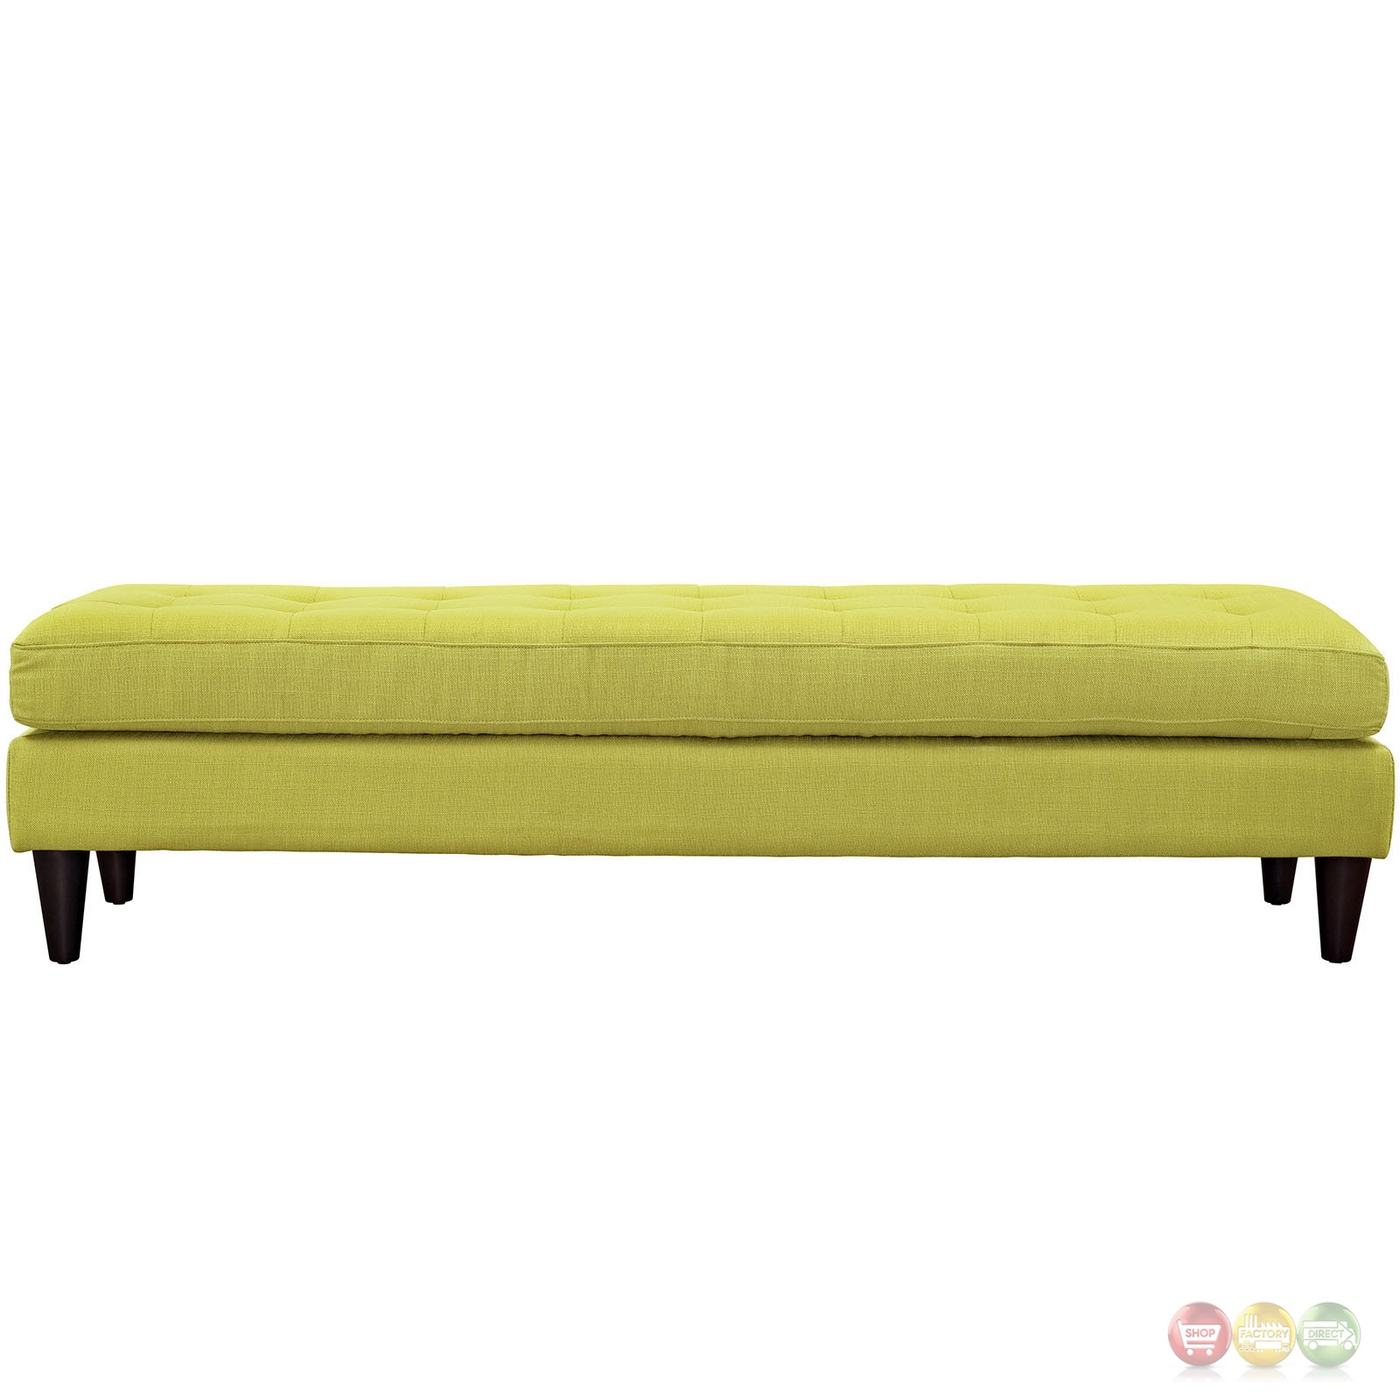 Empress Mid Century Modern Bench With Button Tufted Upholstery Wheatgrass